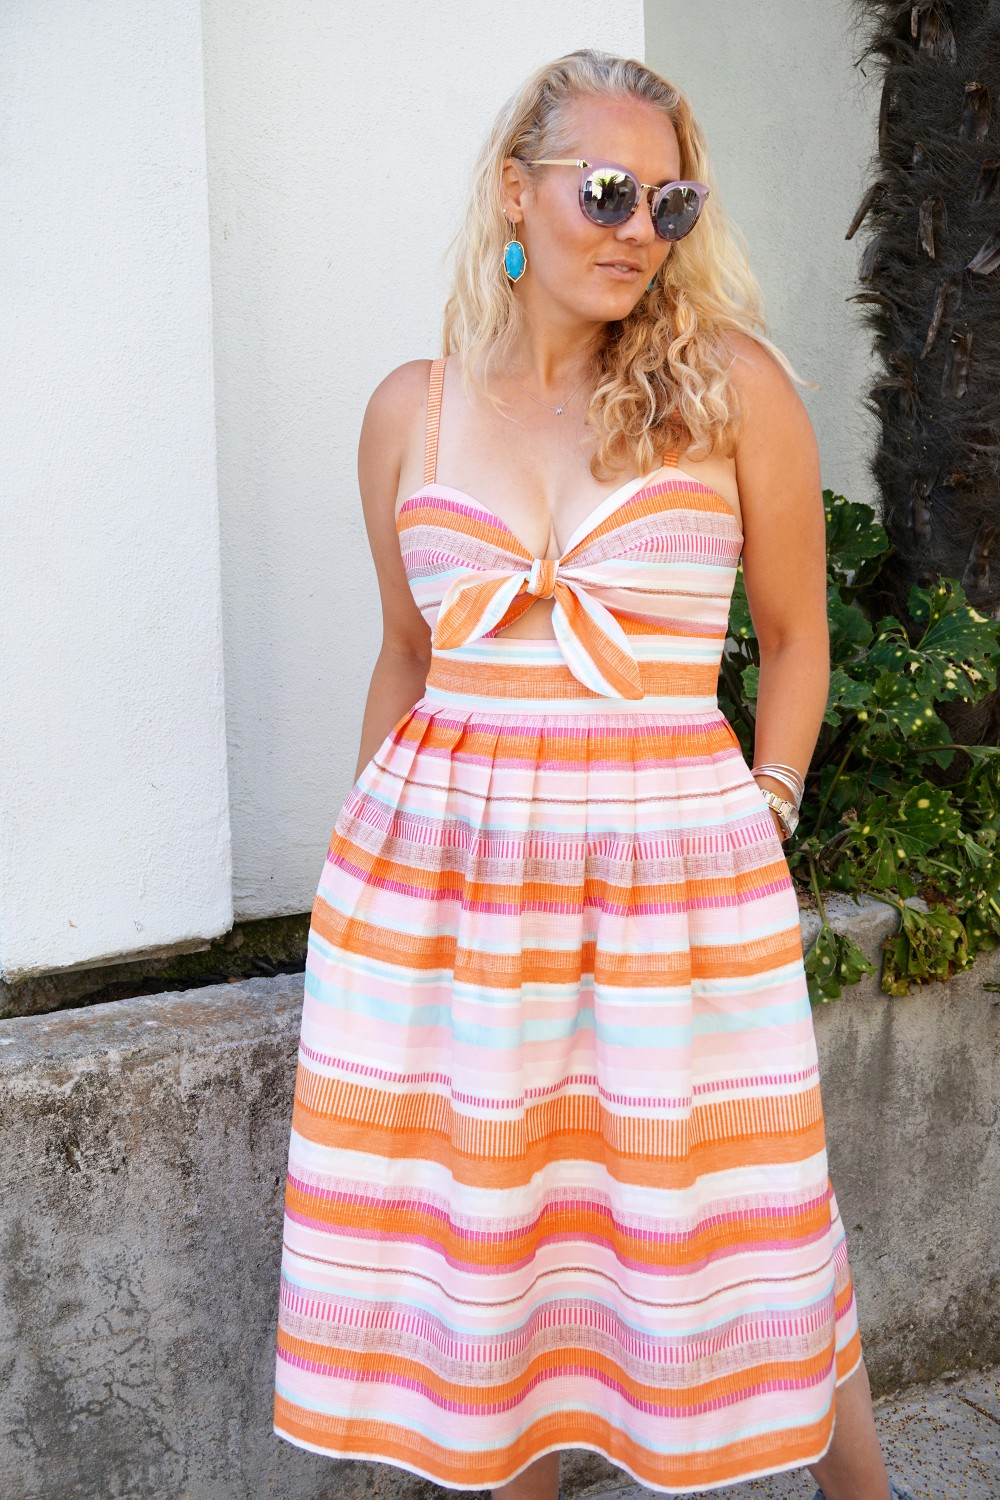 Spring Stripe Dress-Stripes and Cut Outs-Outfit Inspiration-Bay Area Blogger-Summer Dress-Sunday Best Outfit Inspiration-Have Need Want 9